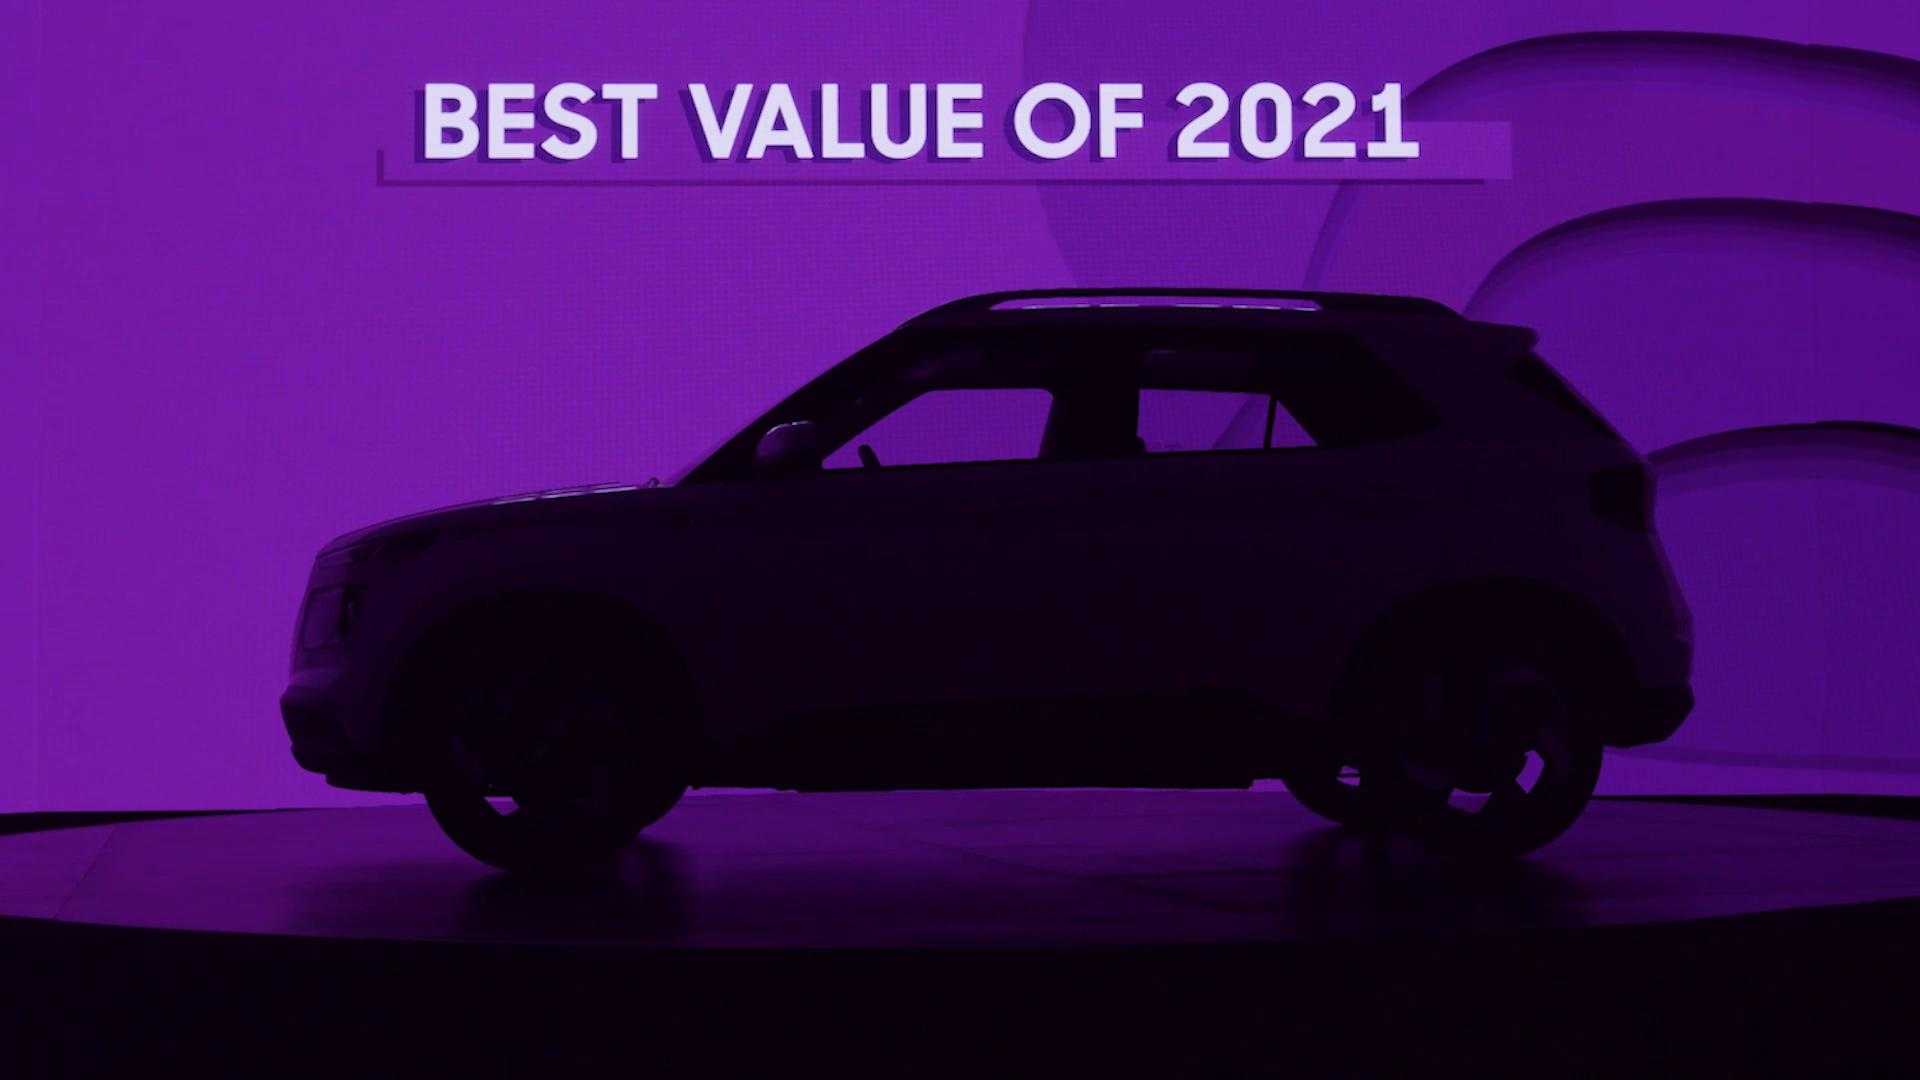 Video: Cars.com Best Value of 2021